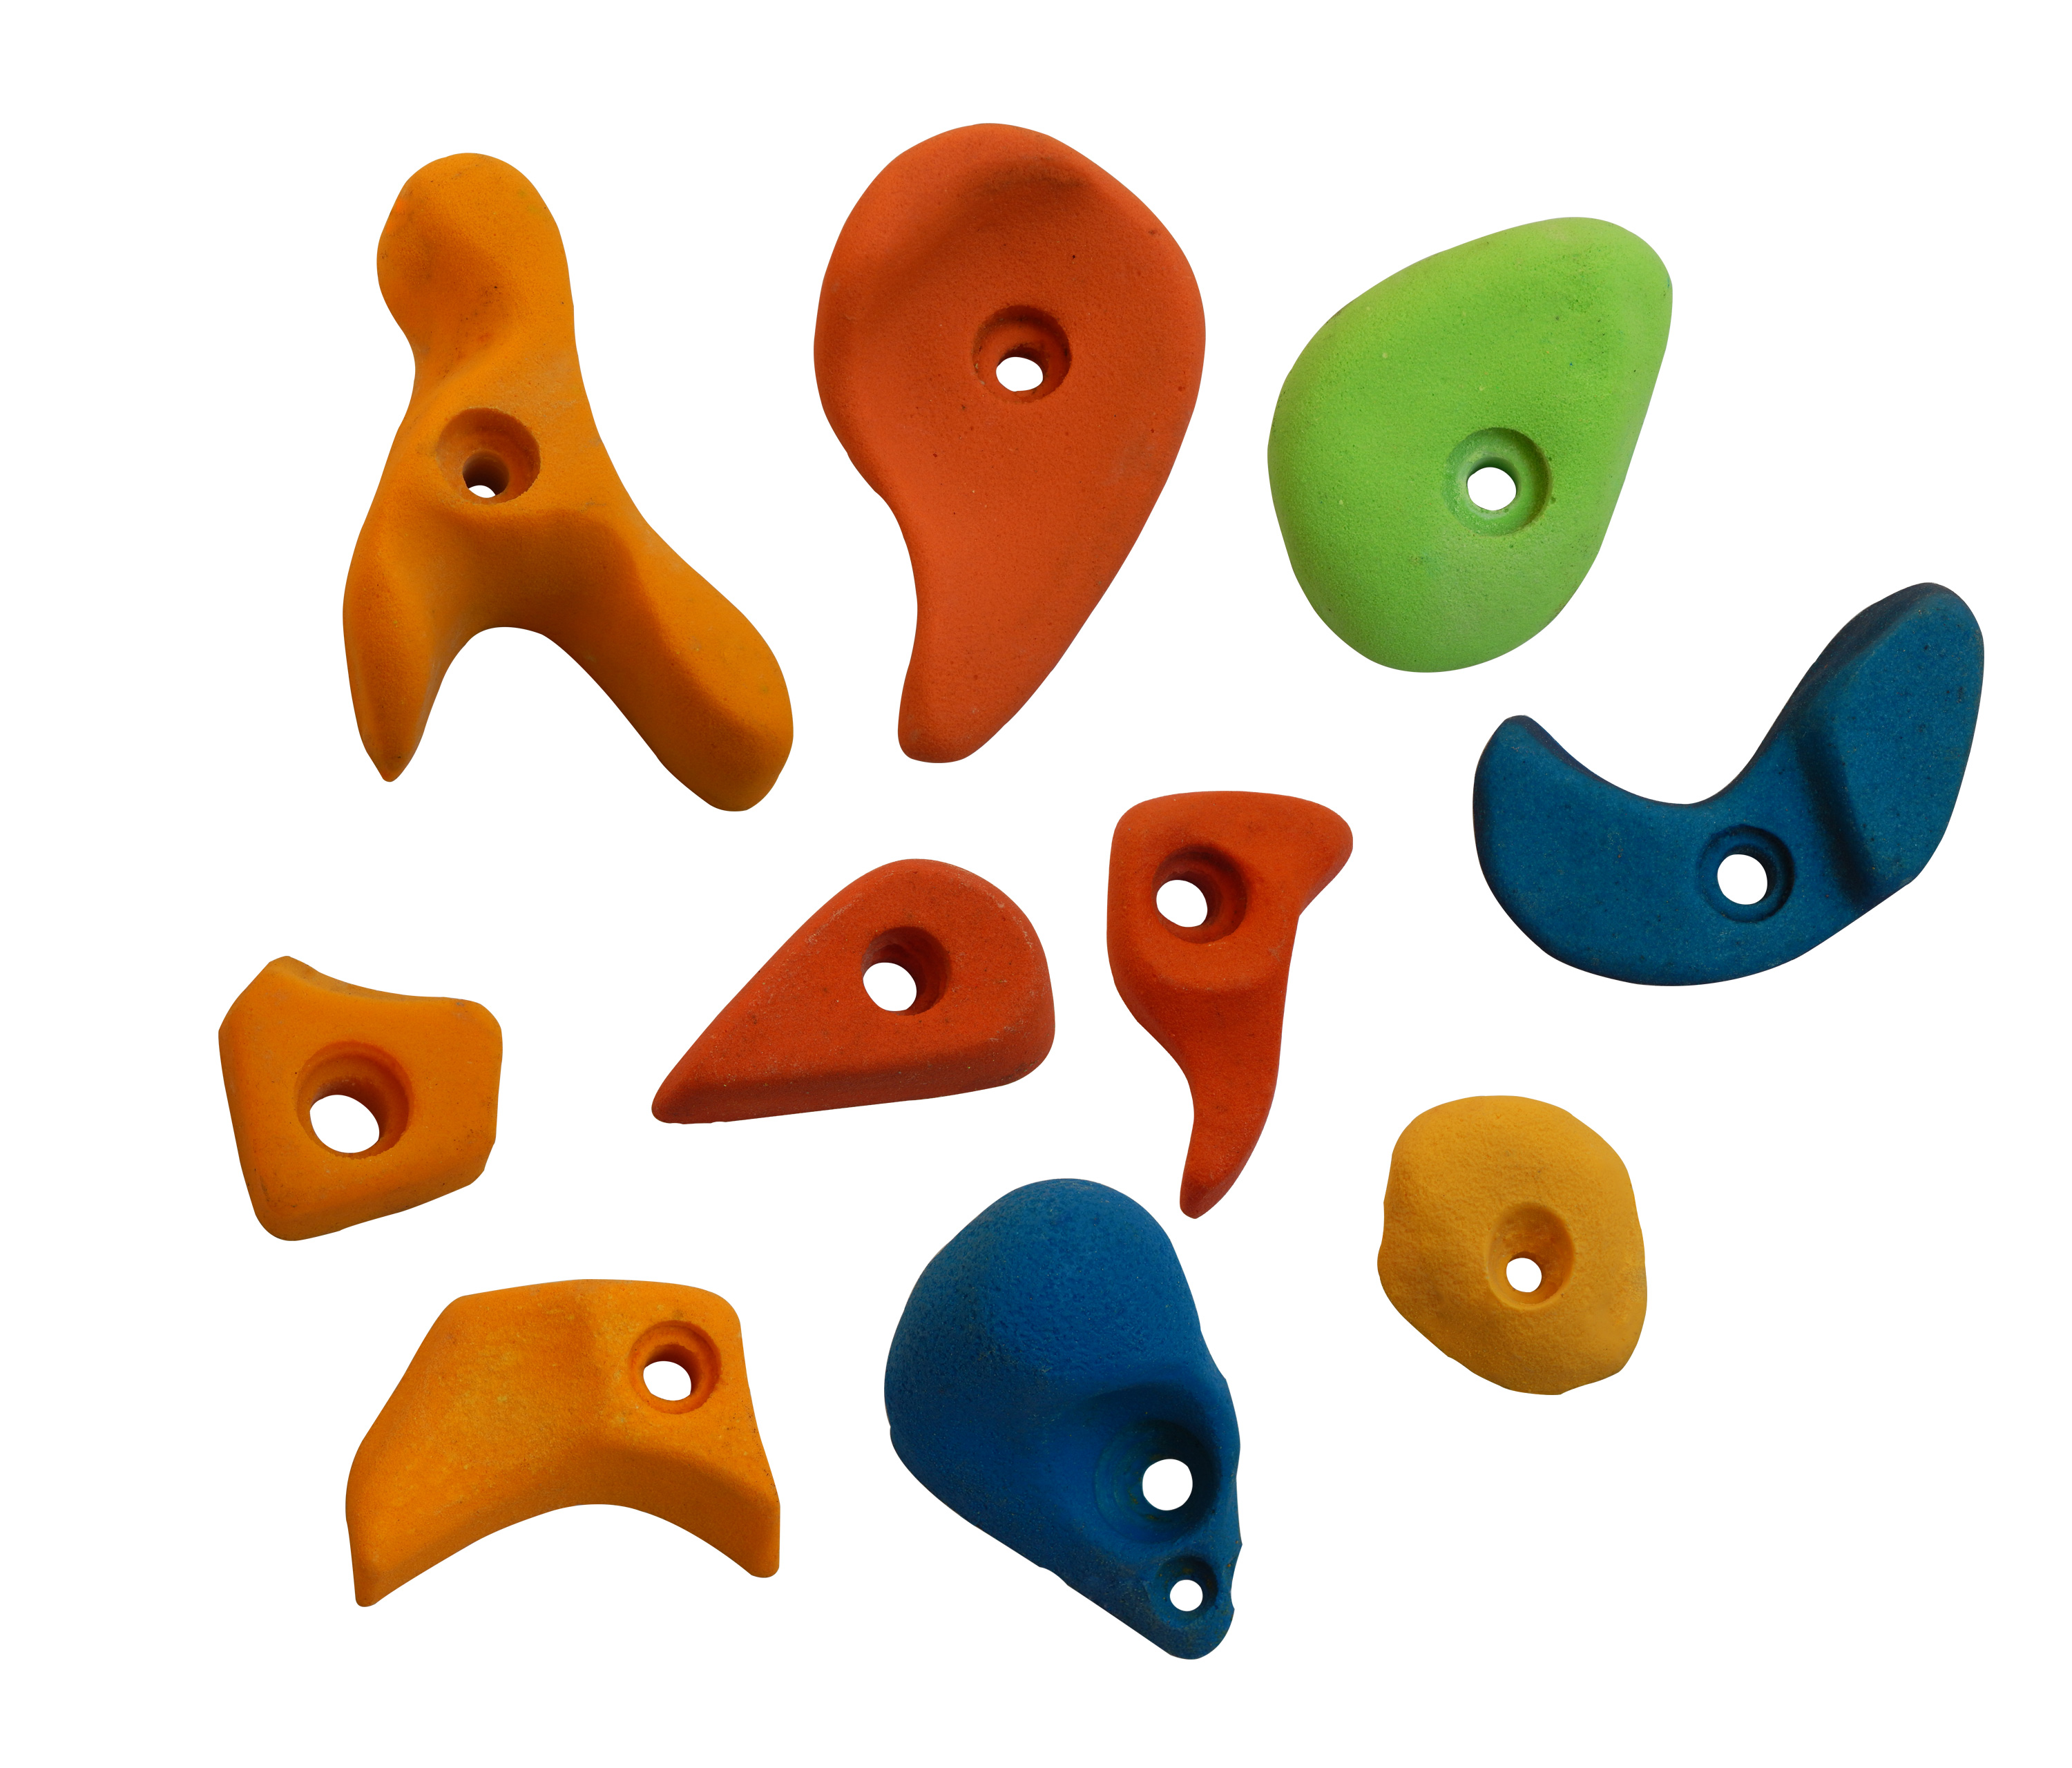 Mix Climbing Holds Manufacturers in Tirupati